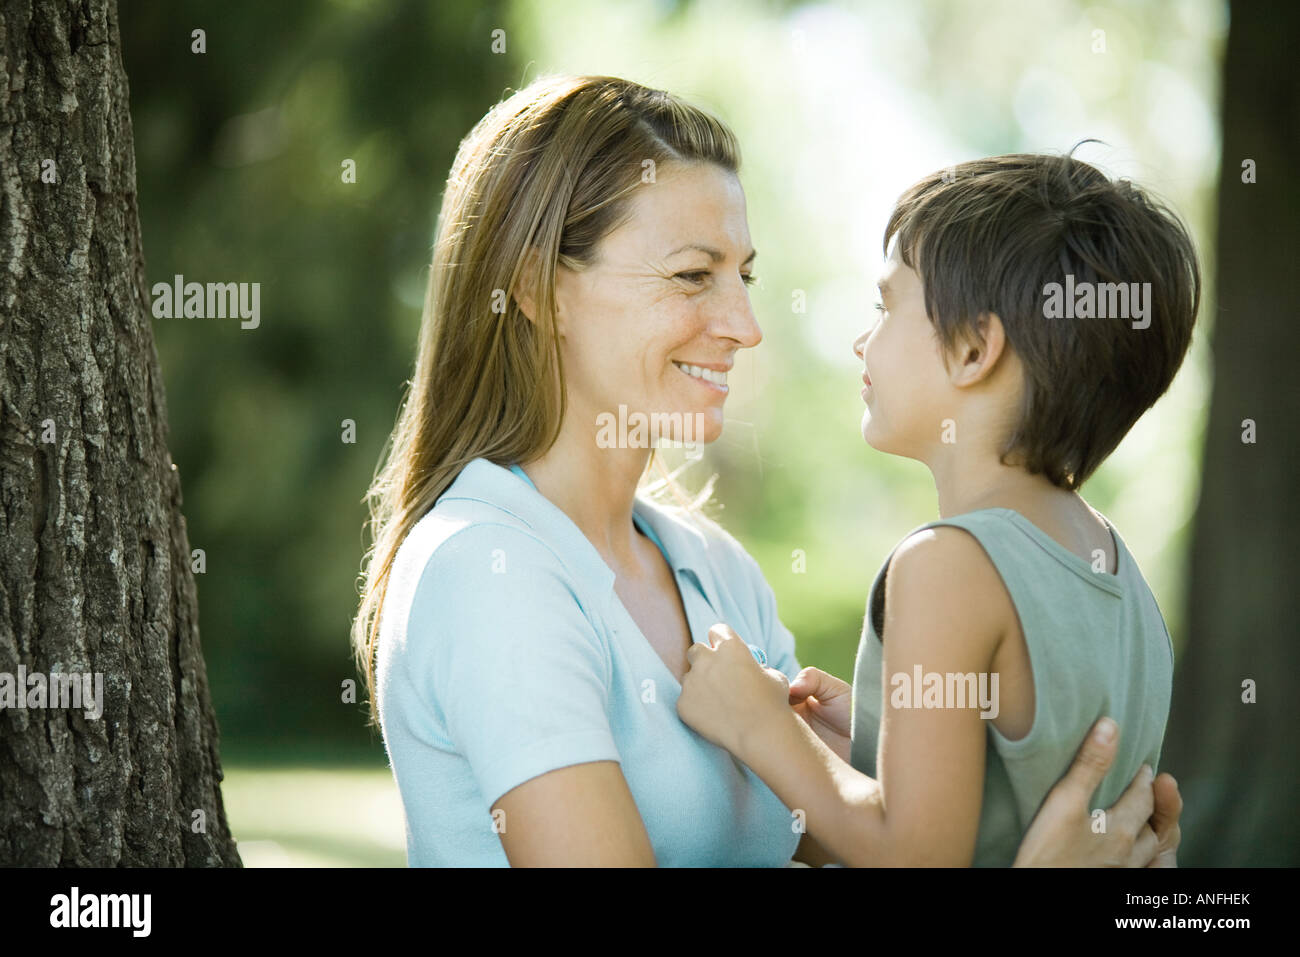 Mother and son outdoors, face to face - Stock Image